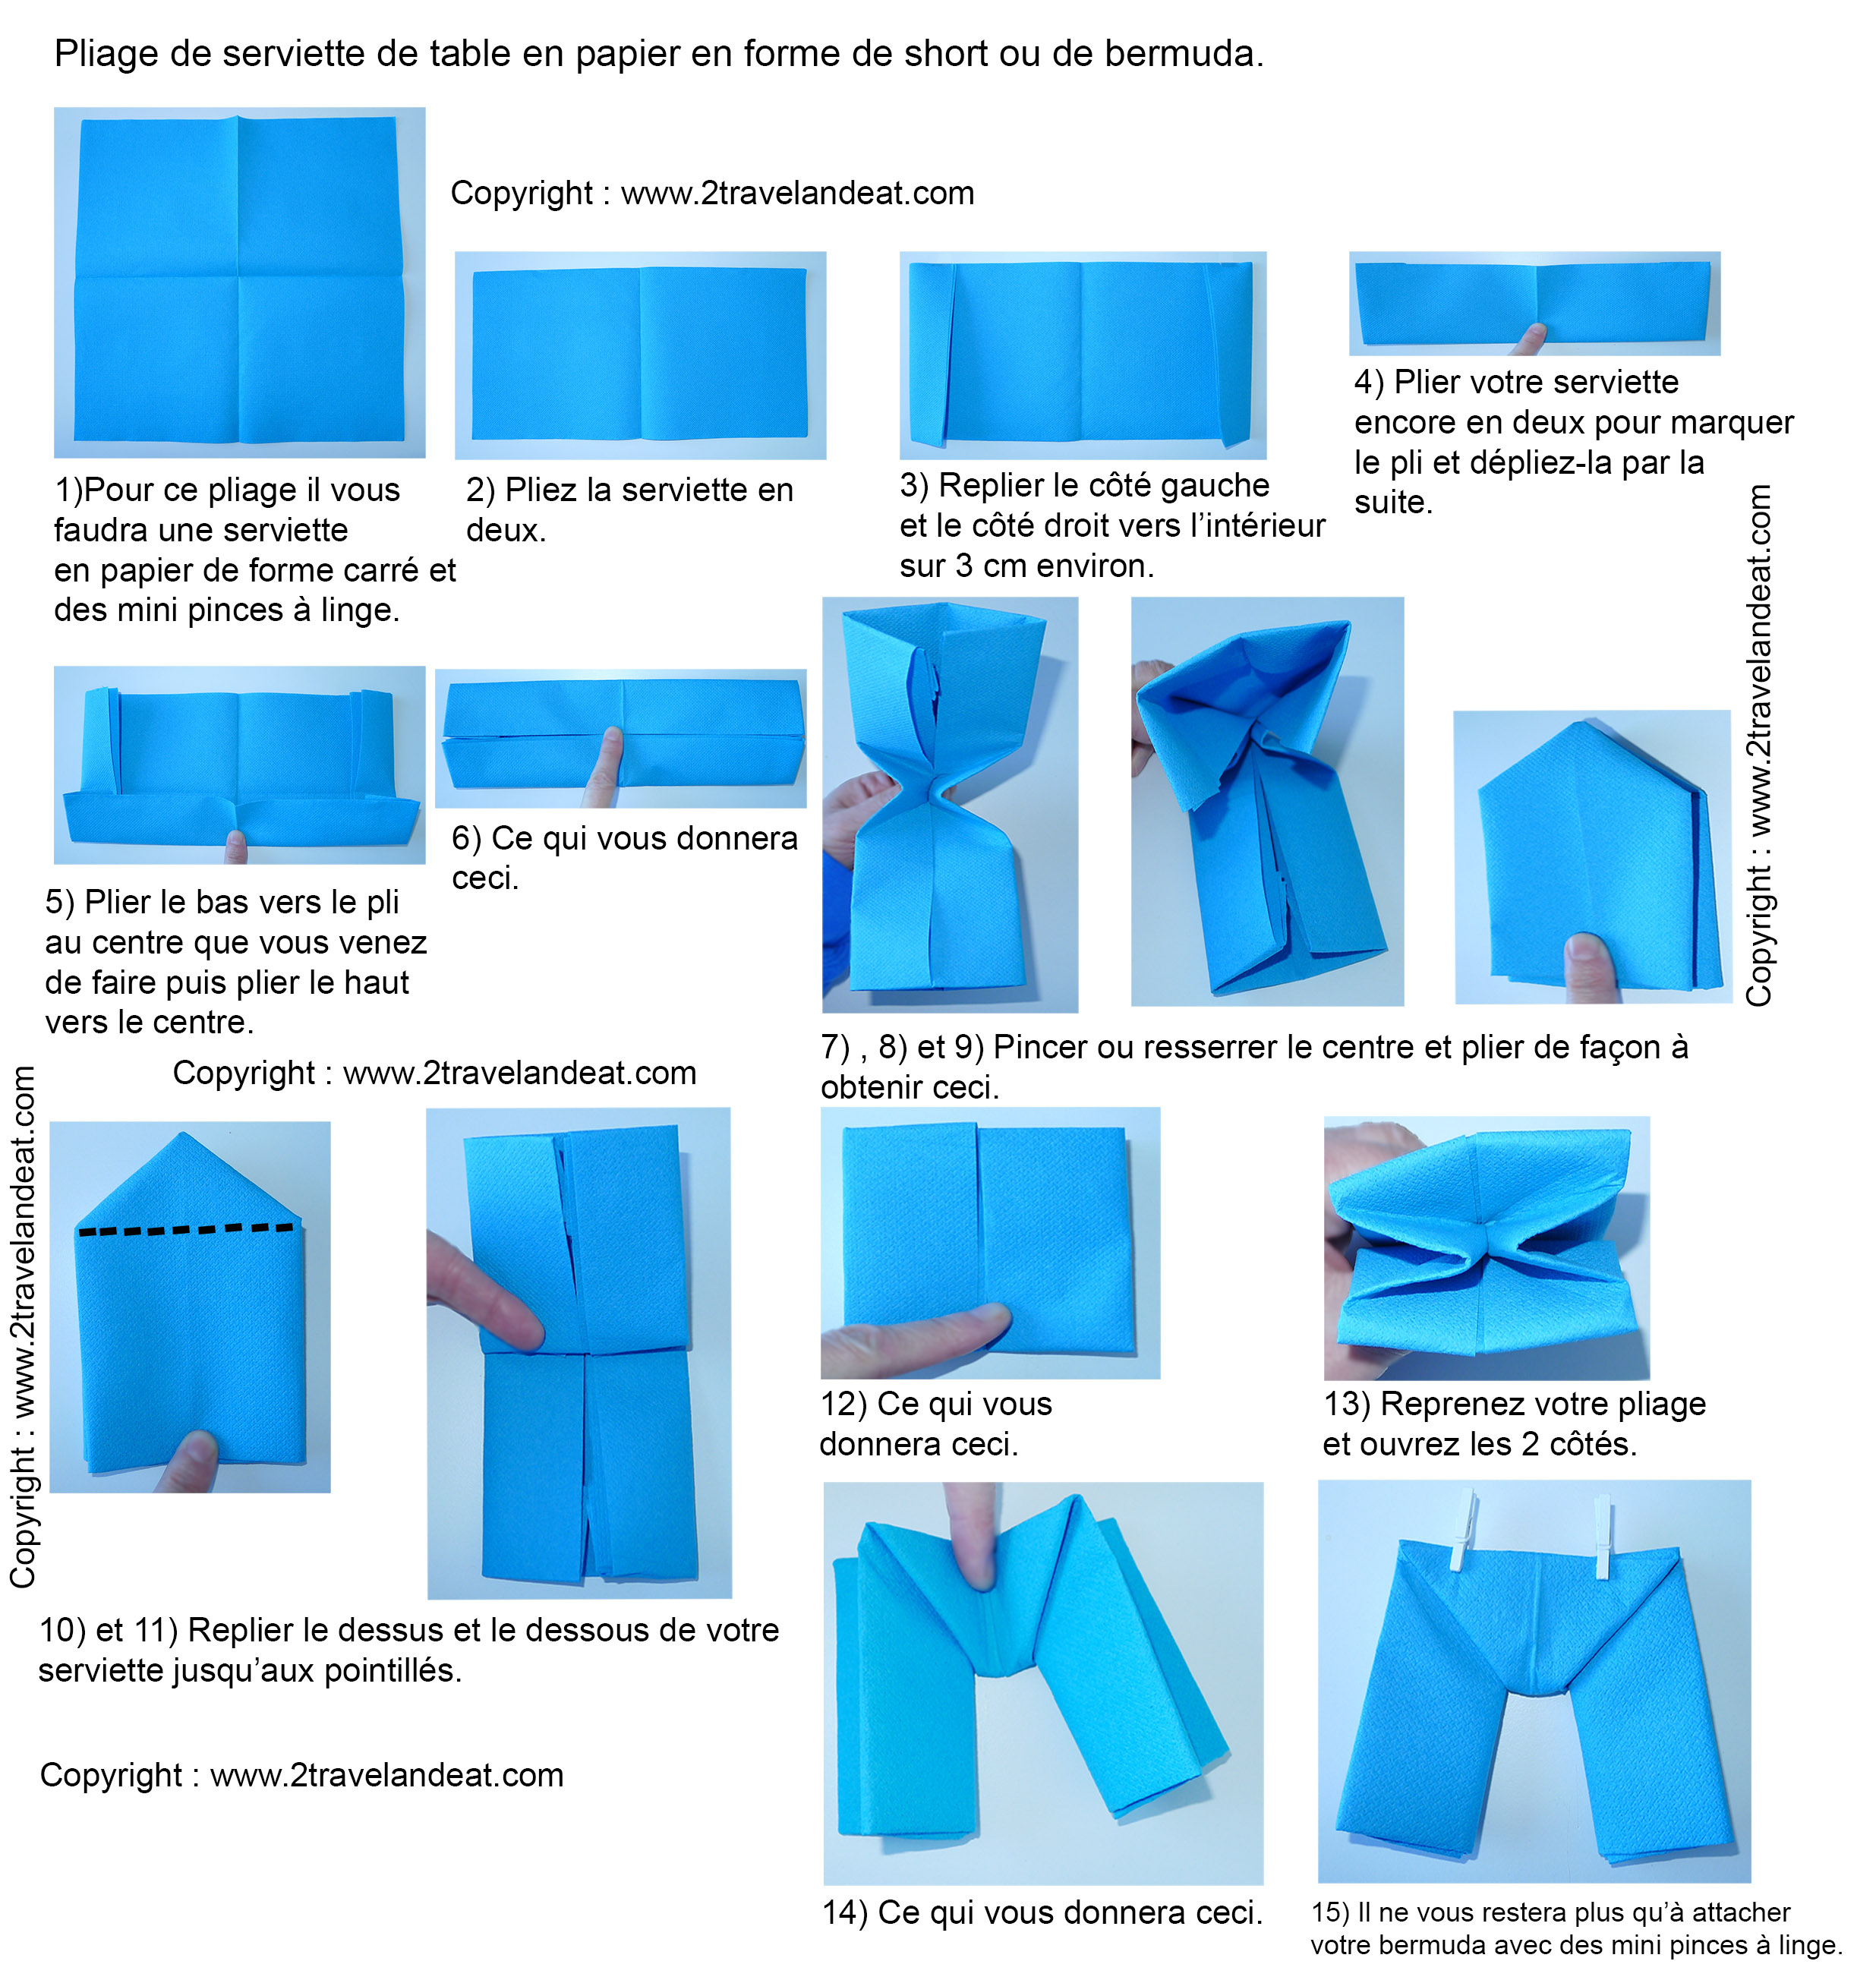 Pliage de serviettes de table en papier pliage de papier origami deocration de table plier - Modele de pliage de serviette facile ...